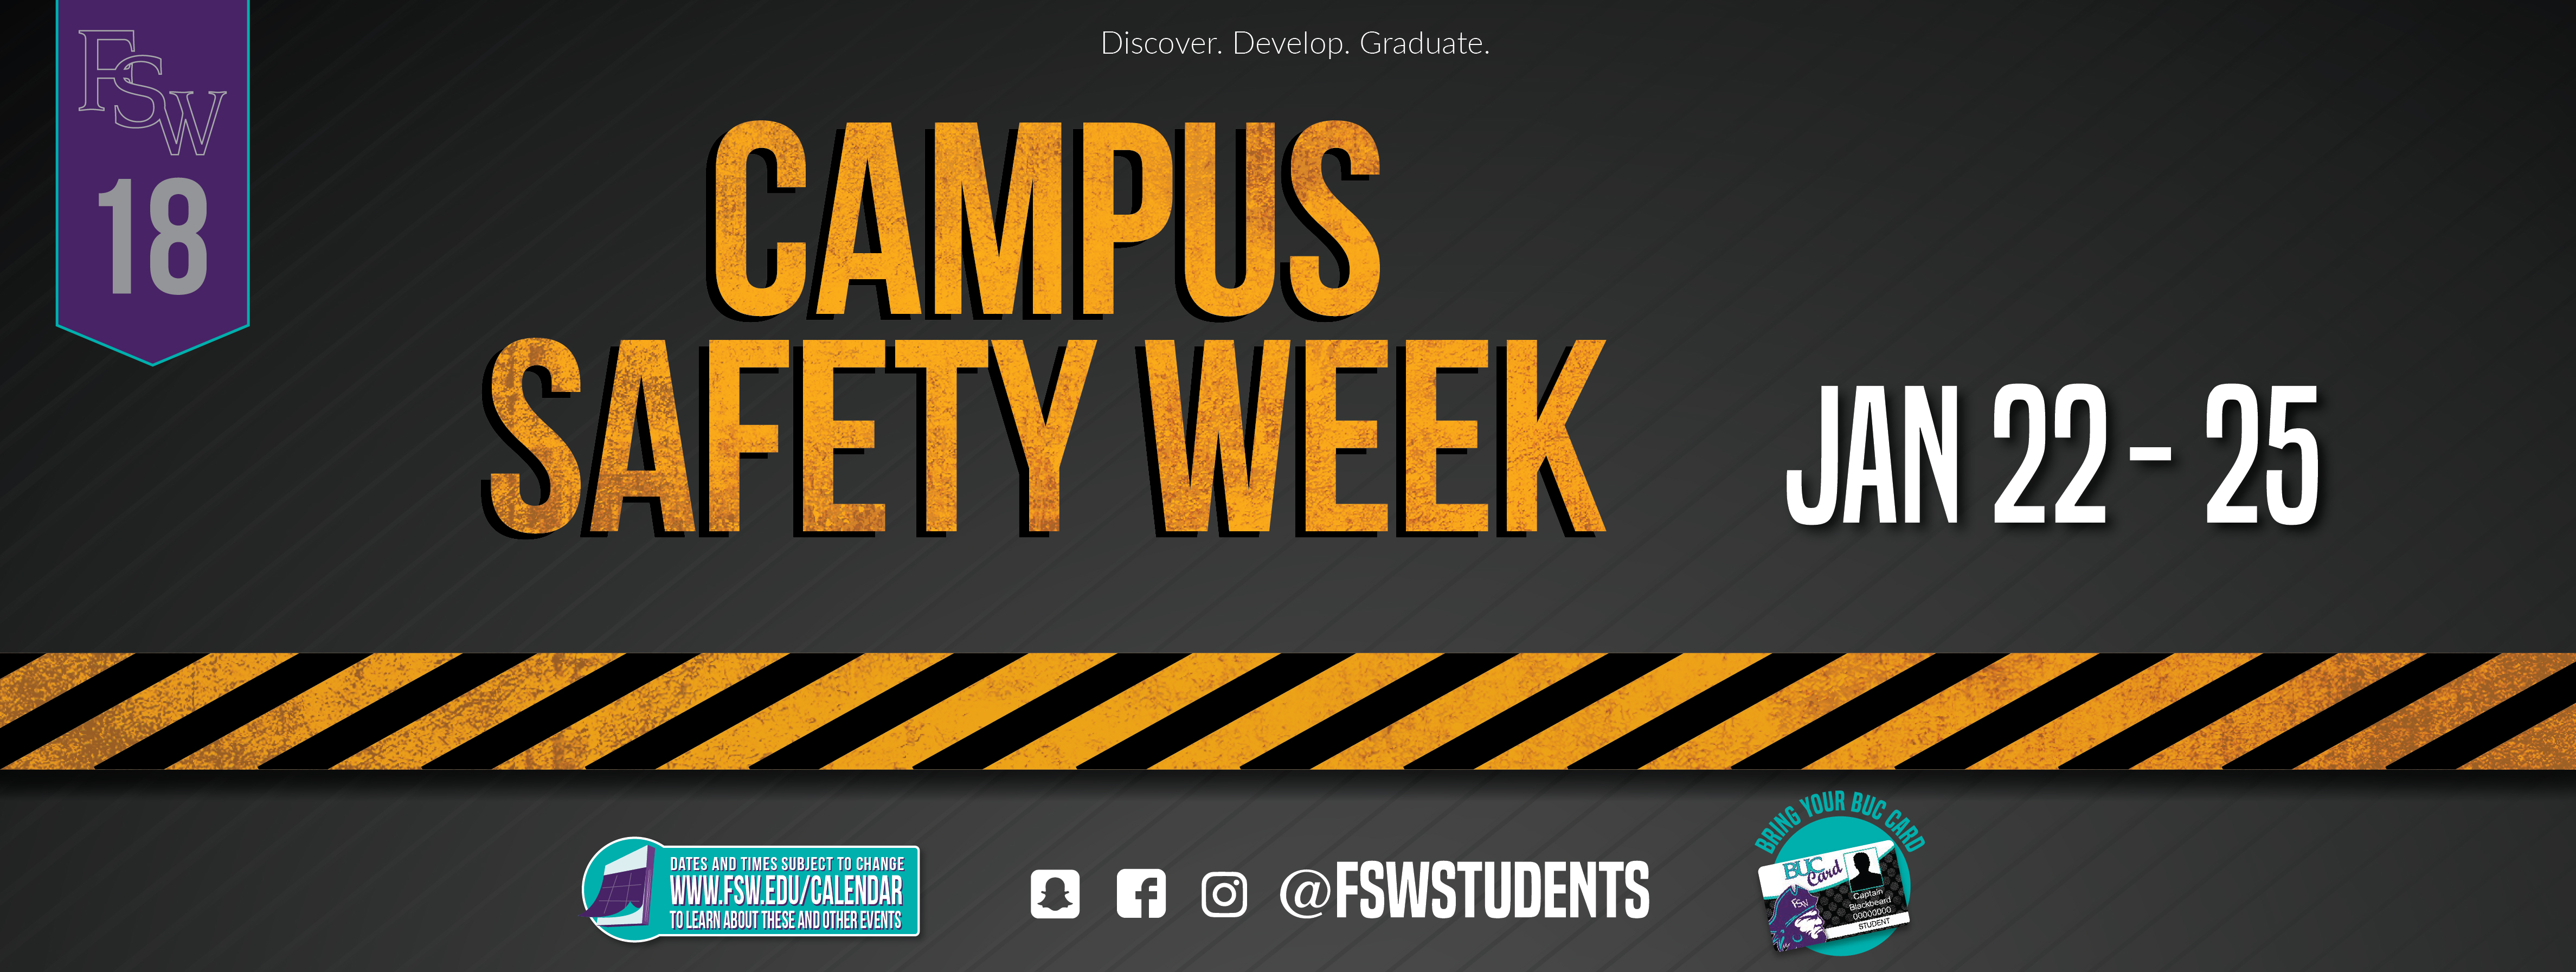 Campus Safety Week January 22-25, 2019